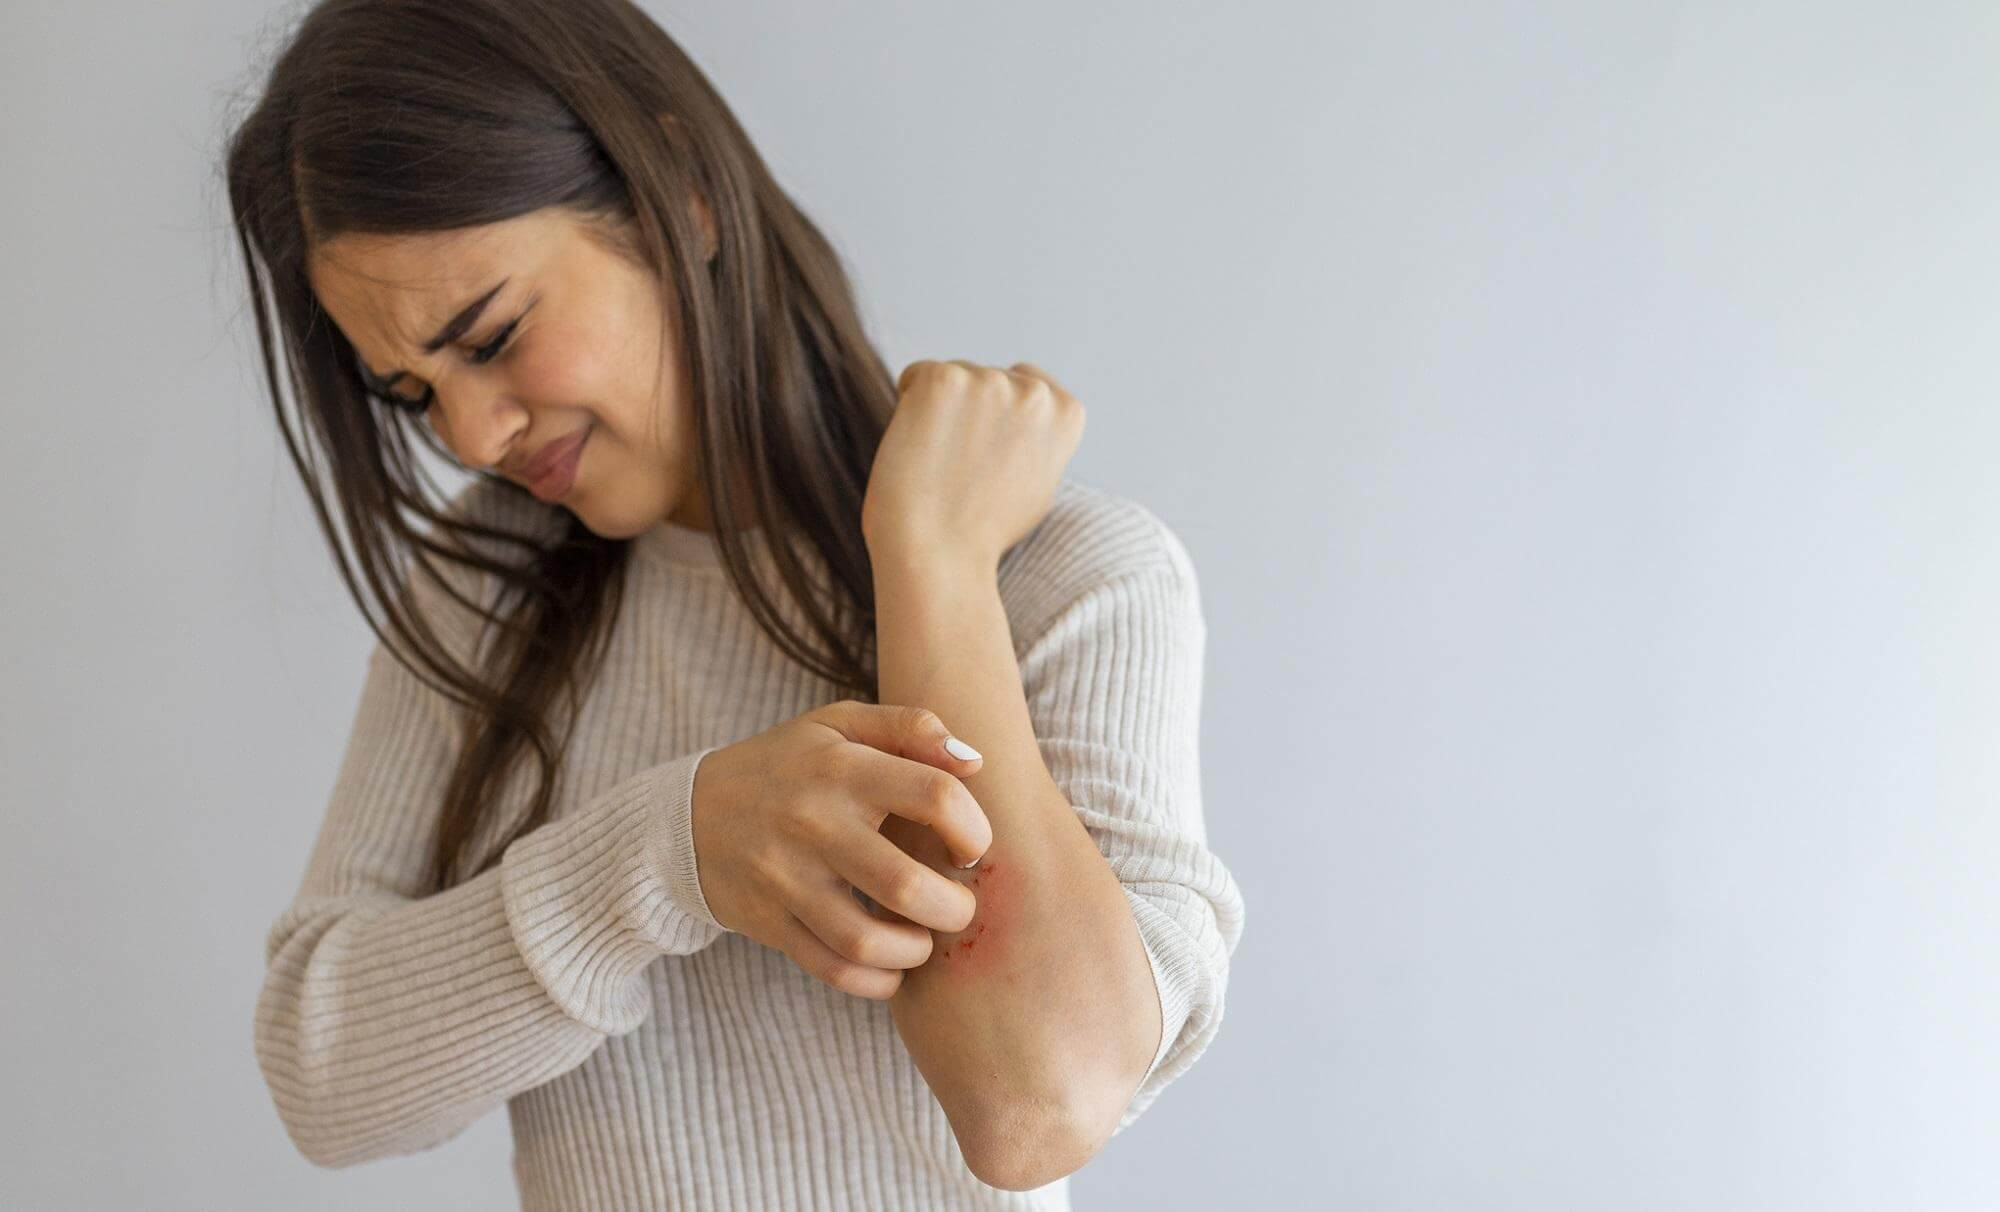 A woman scratching her painful psoriasis sores.